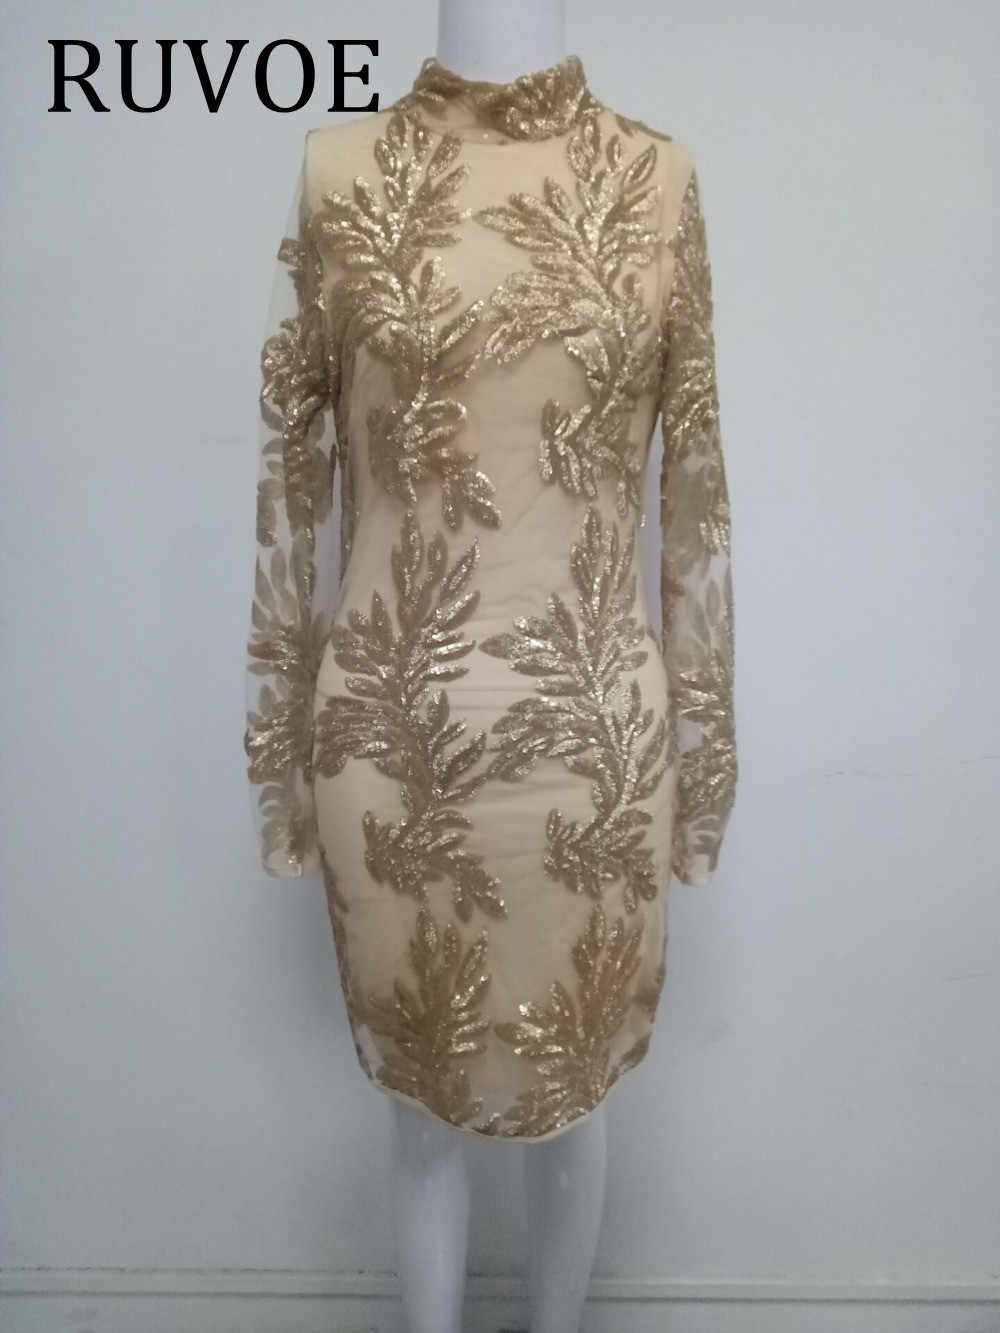 6c033405935 ... Sexy Gold Mini Dress Bodycon Sequin New Year Party Dress Long Sleeve  High Neck Bodycon Nigh ...